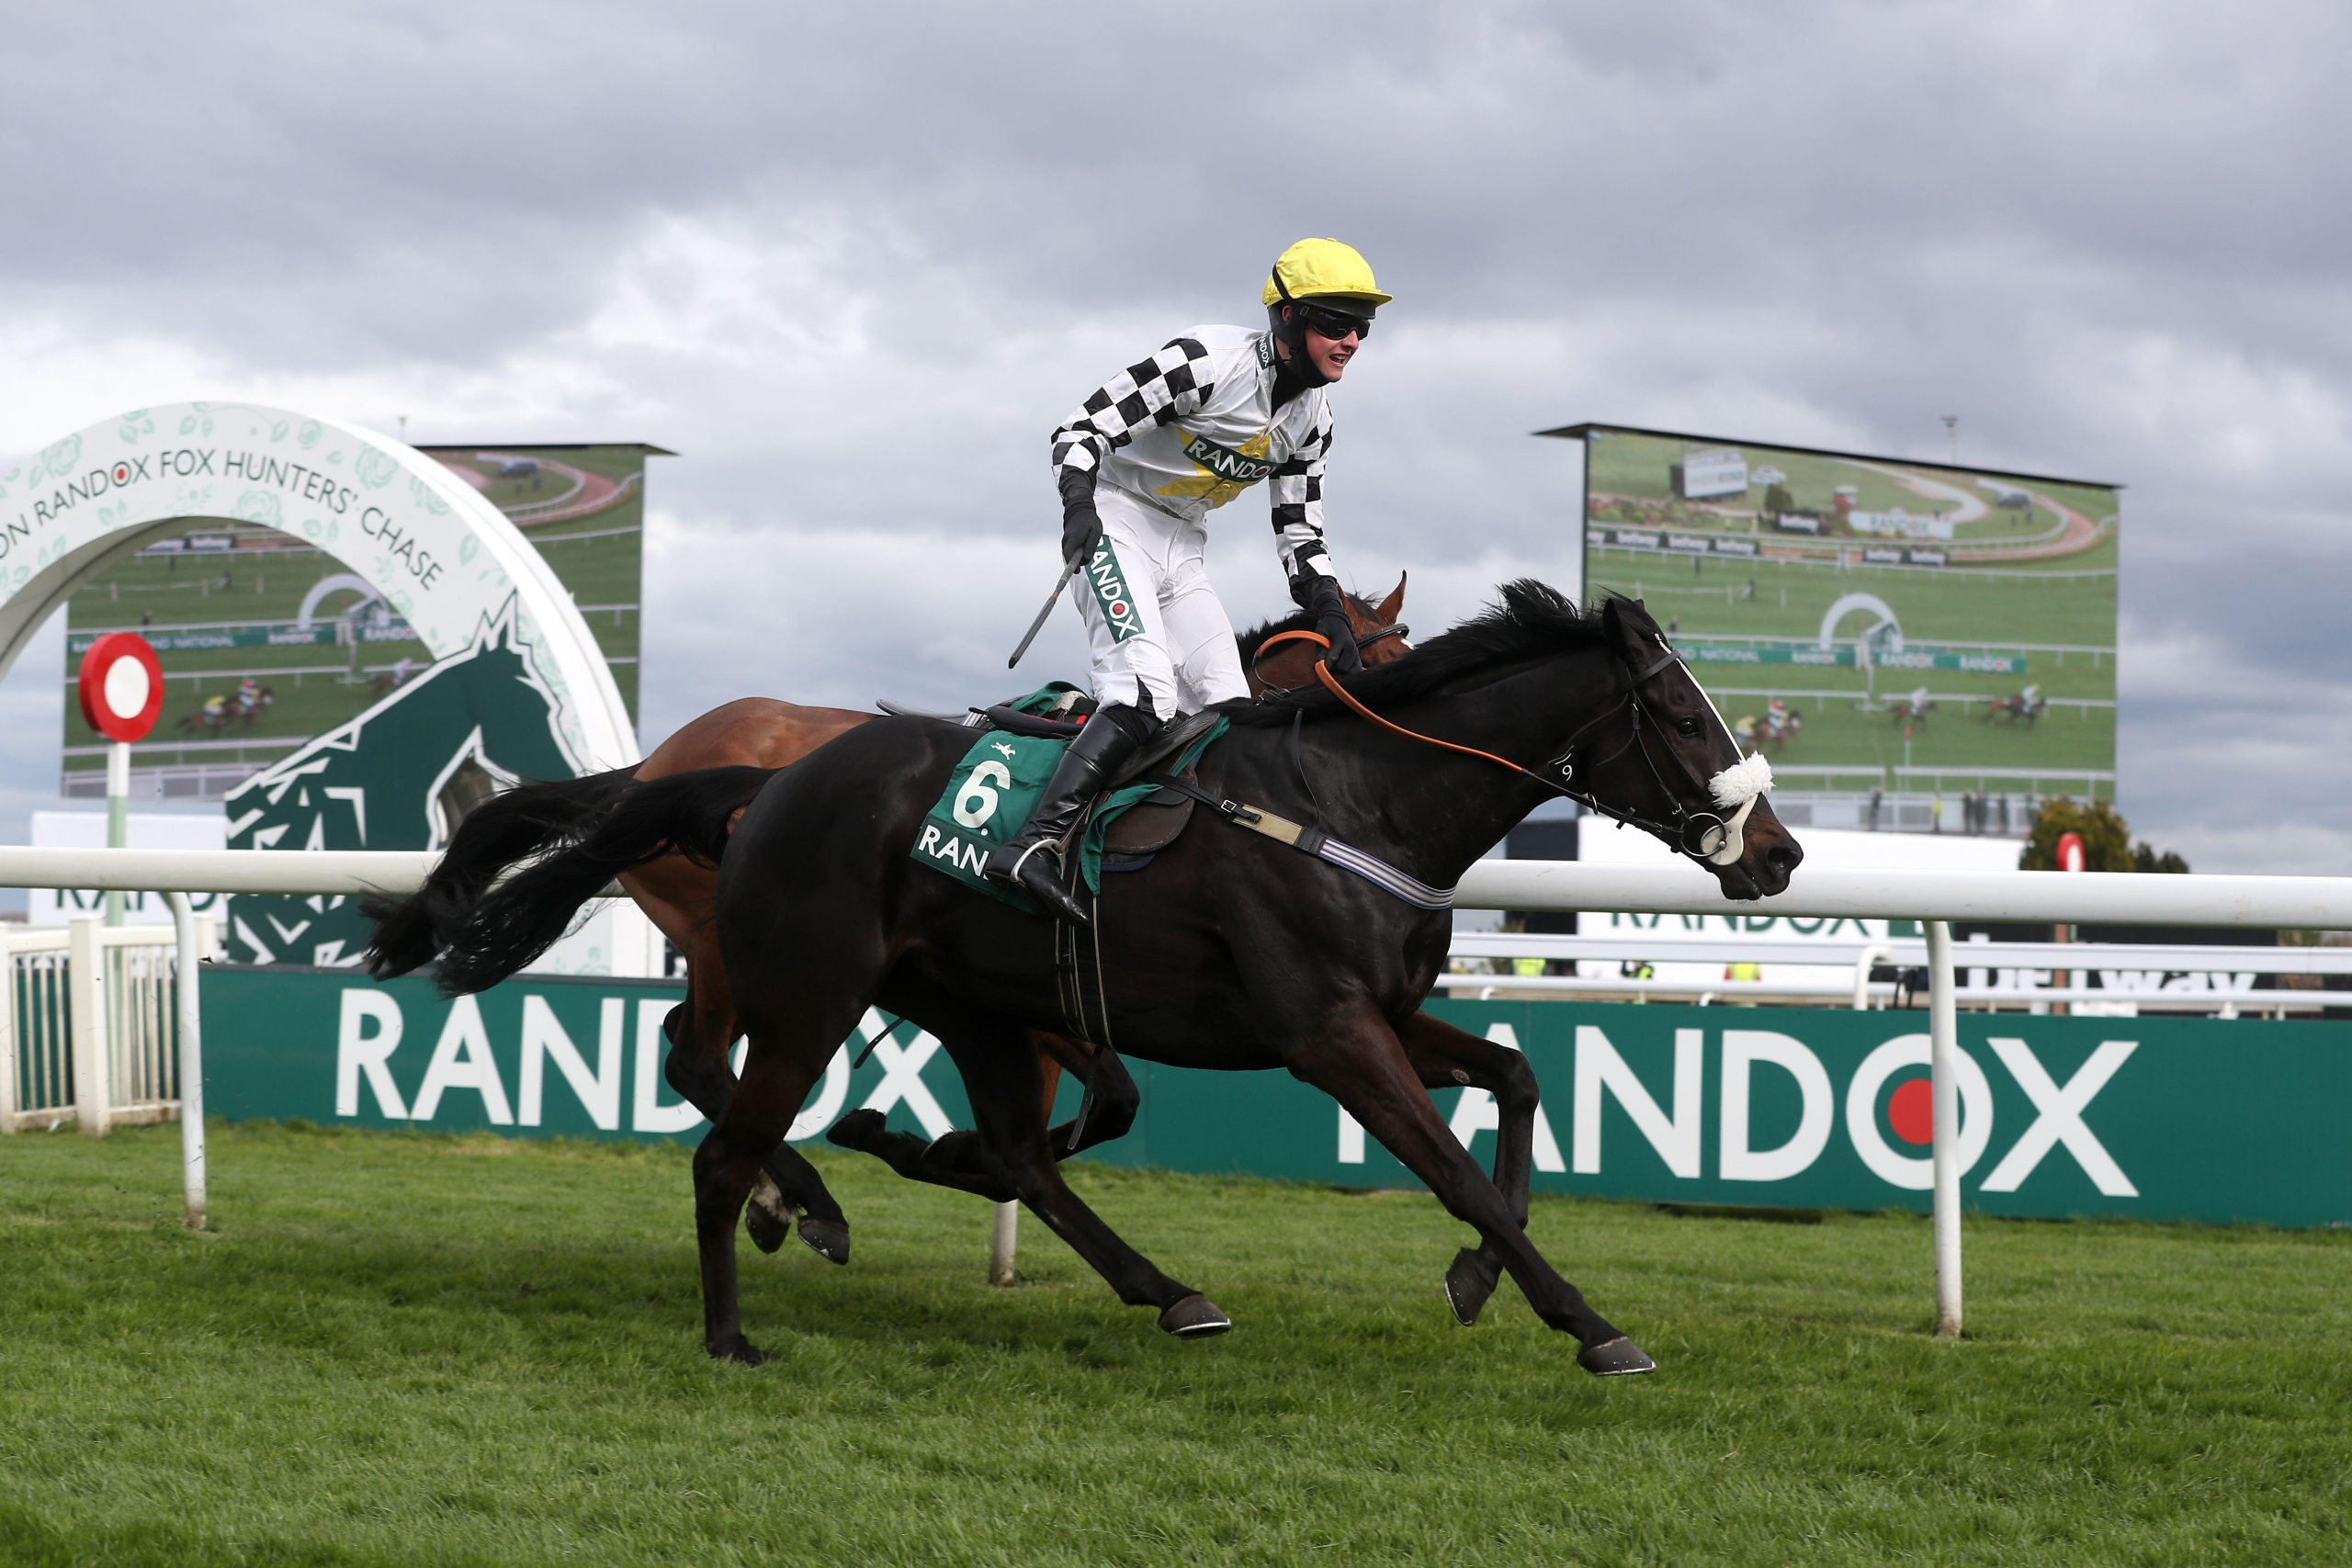 Cousin Pascal ridden by jockey James King win the Rose Paterson Randox Foxhunters' Open Hunters' Chase during Liverpool NHS Day of the 2021 Randox Health Grand National Festival at Aintree Racecourse, Liverpool. Picture date: Thursday April 8, 2021.